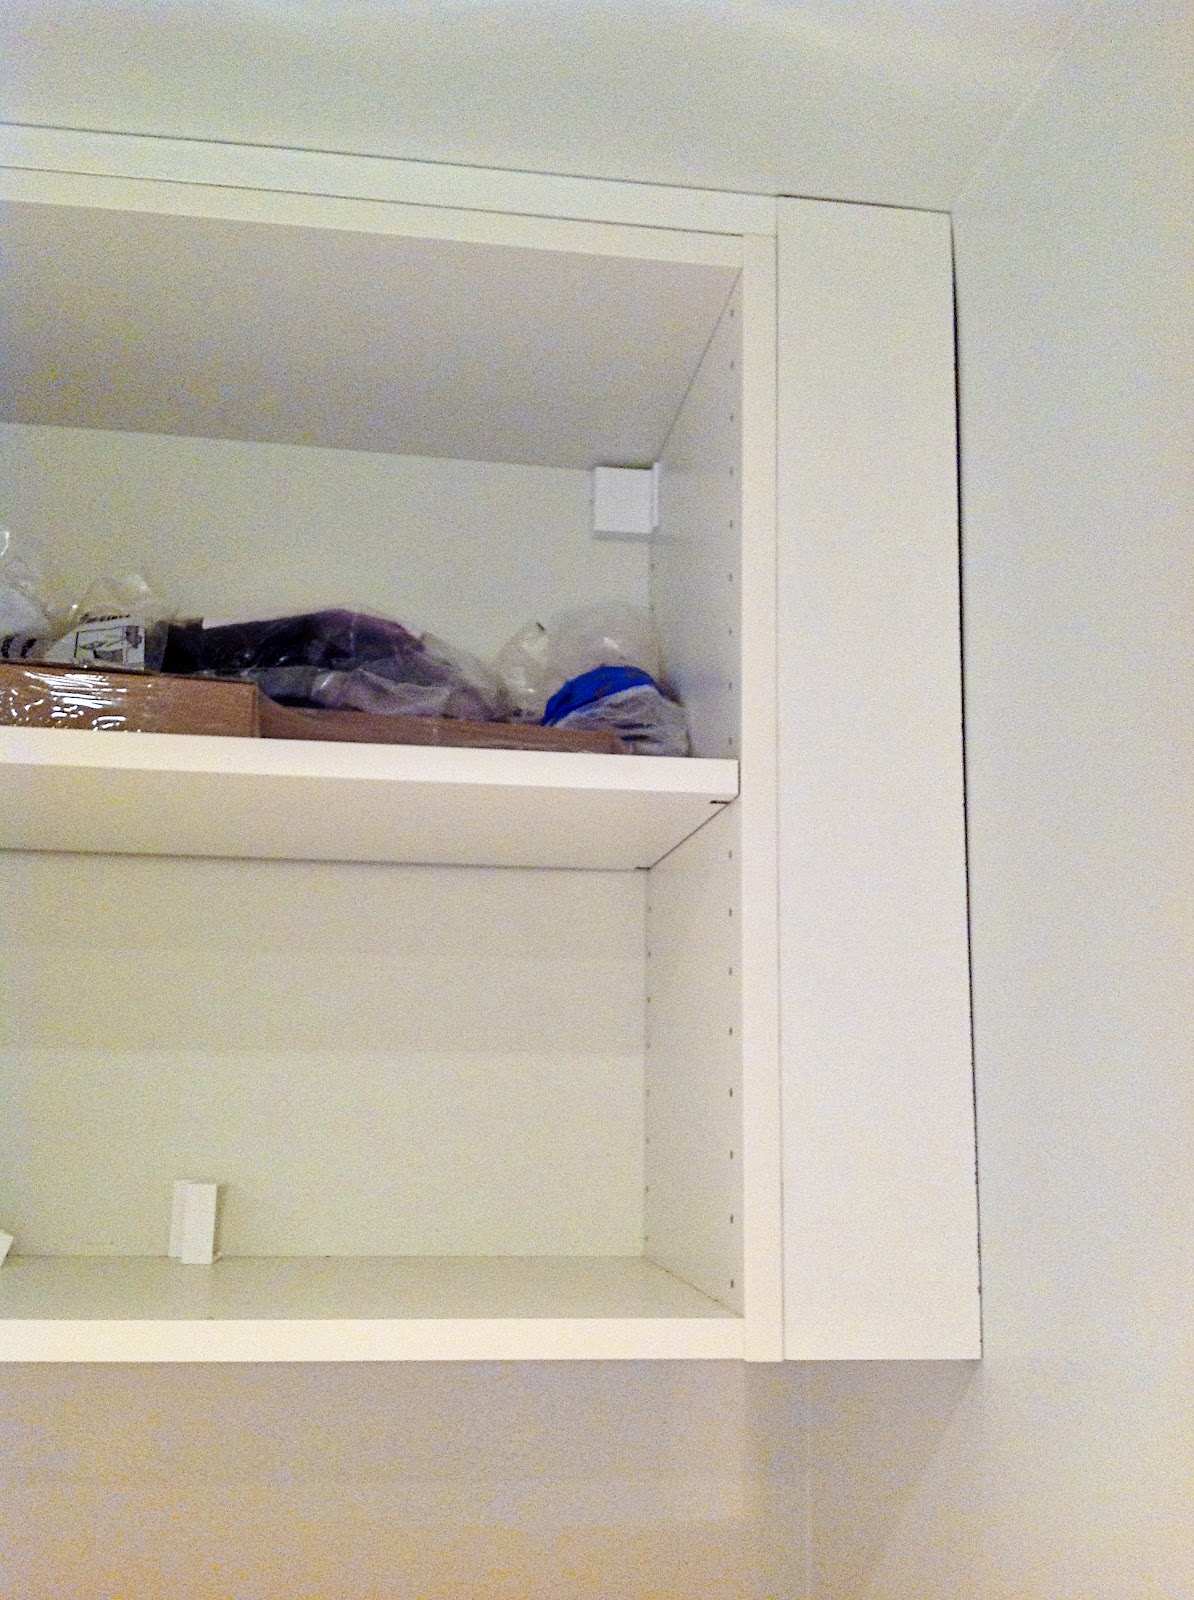 Genial How To Make Cabinets Look Built In (and DIY Ikea PAX Filler Panels)